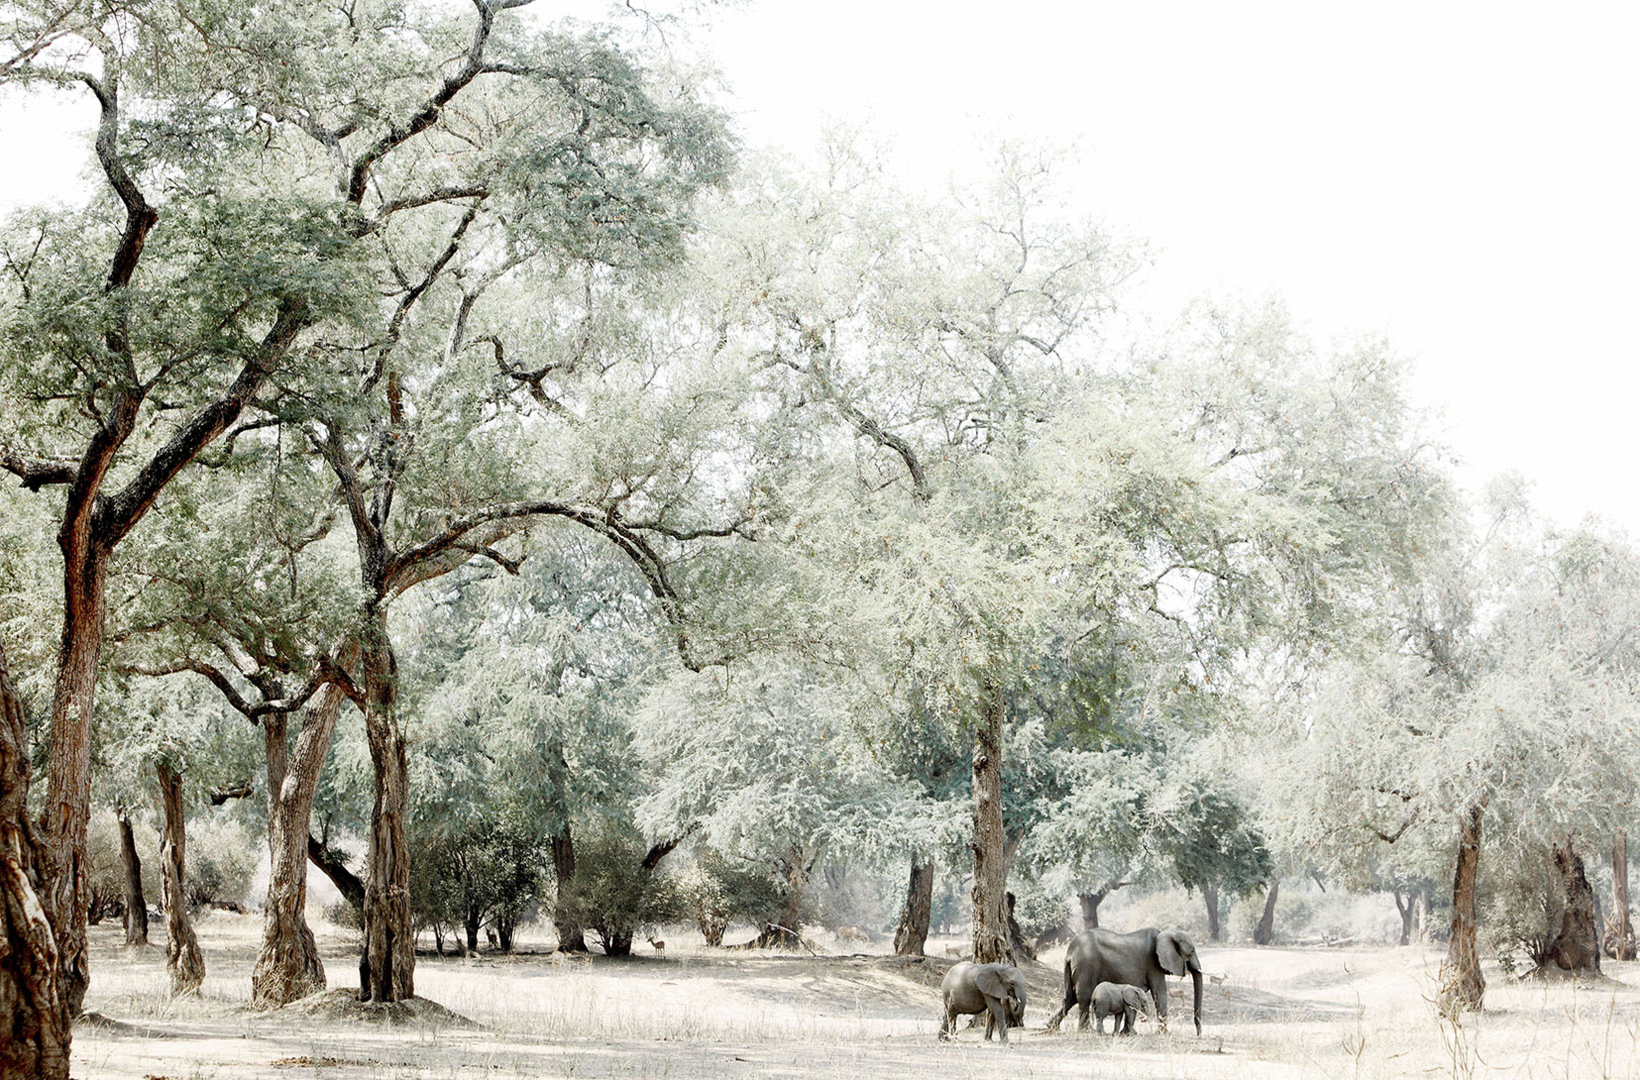 A small family of elephants walks across a dry riverbed in search of water in Mana Pools National Park Zimbabwe